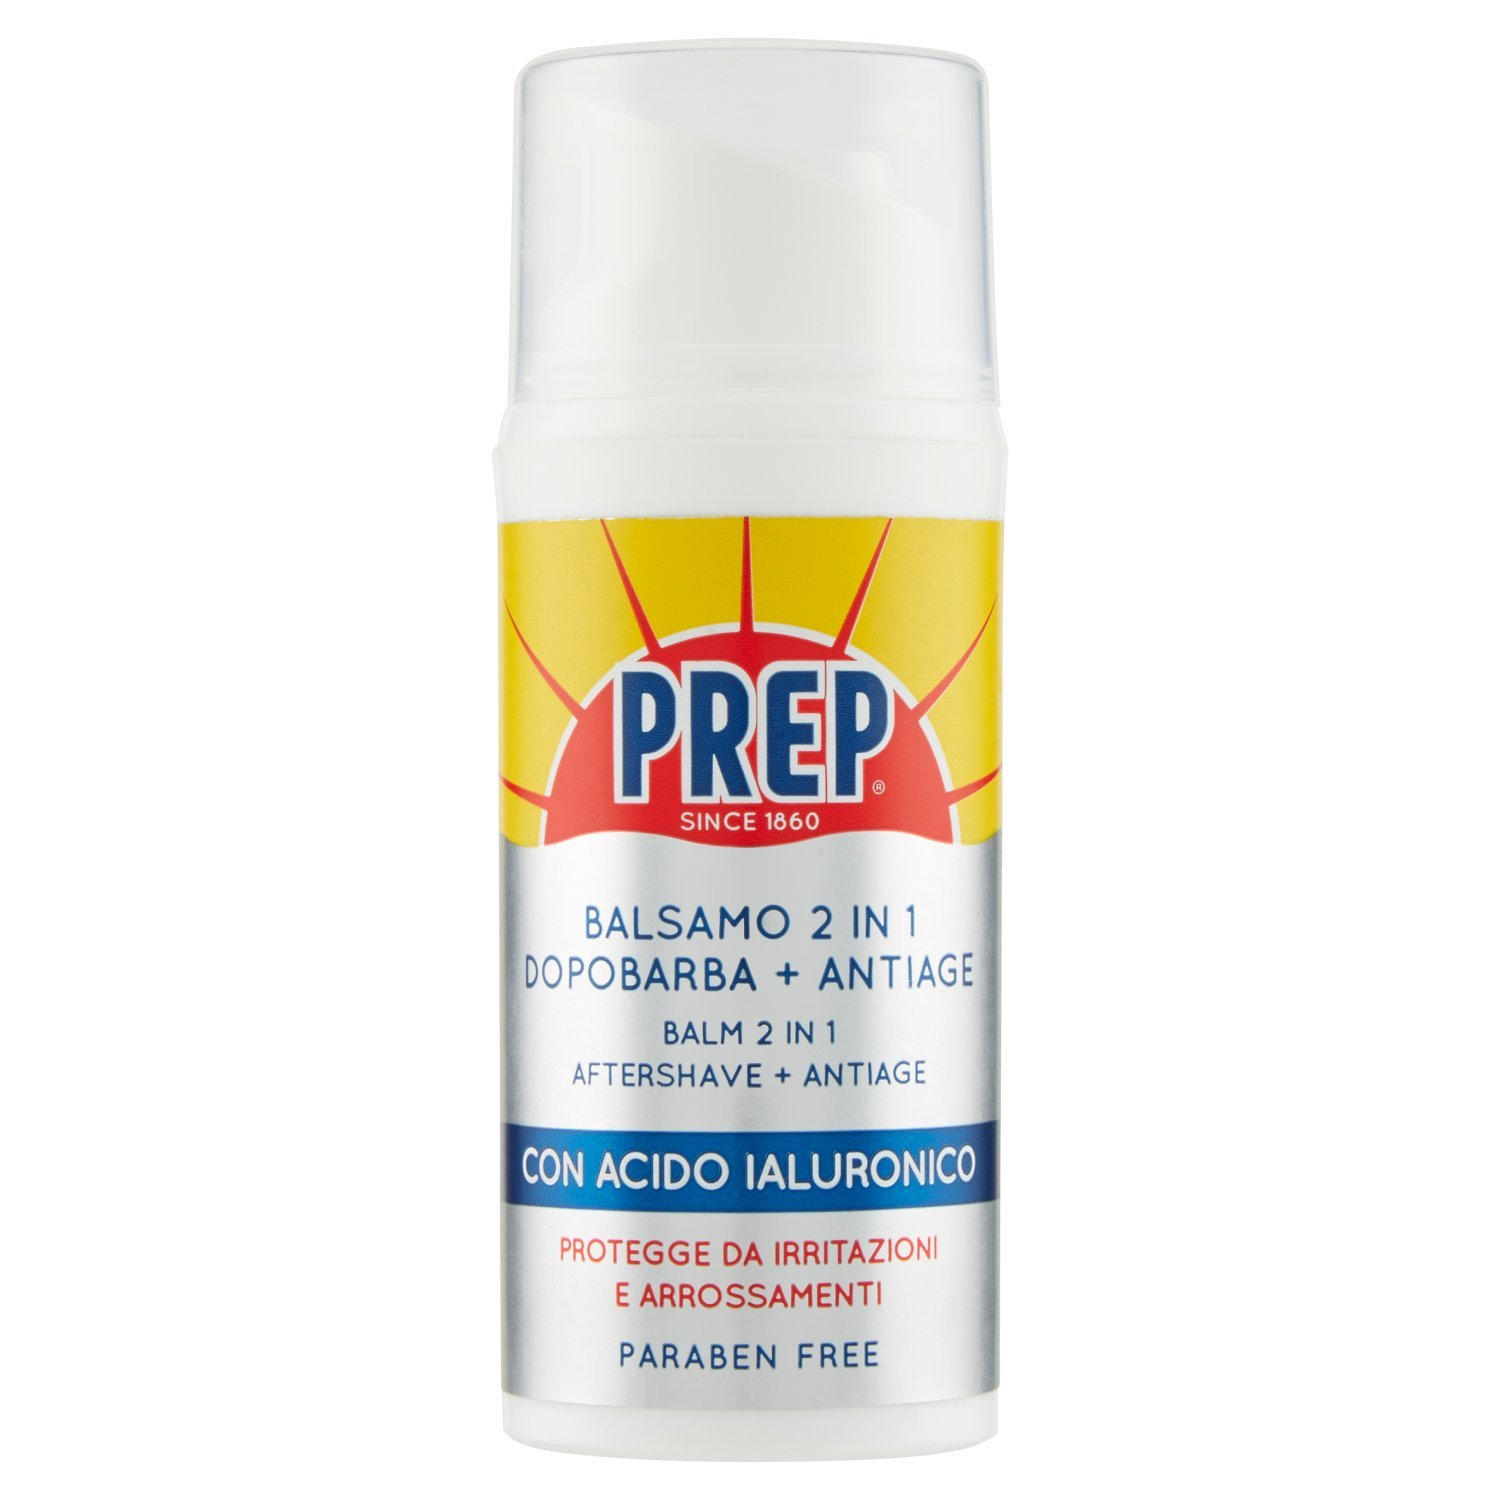 Prep 2-in-1 After Shave & Anti-aging By Prep for Men - 2.7 Oz Aftershave Balm, 2.7 Oz